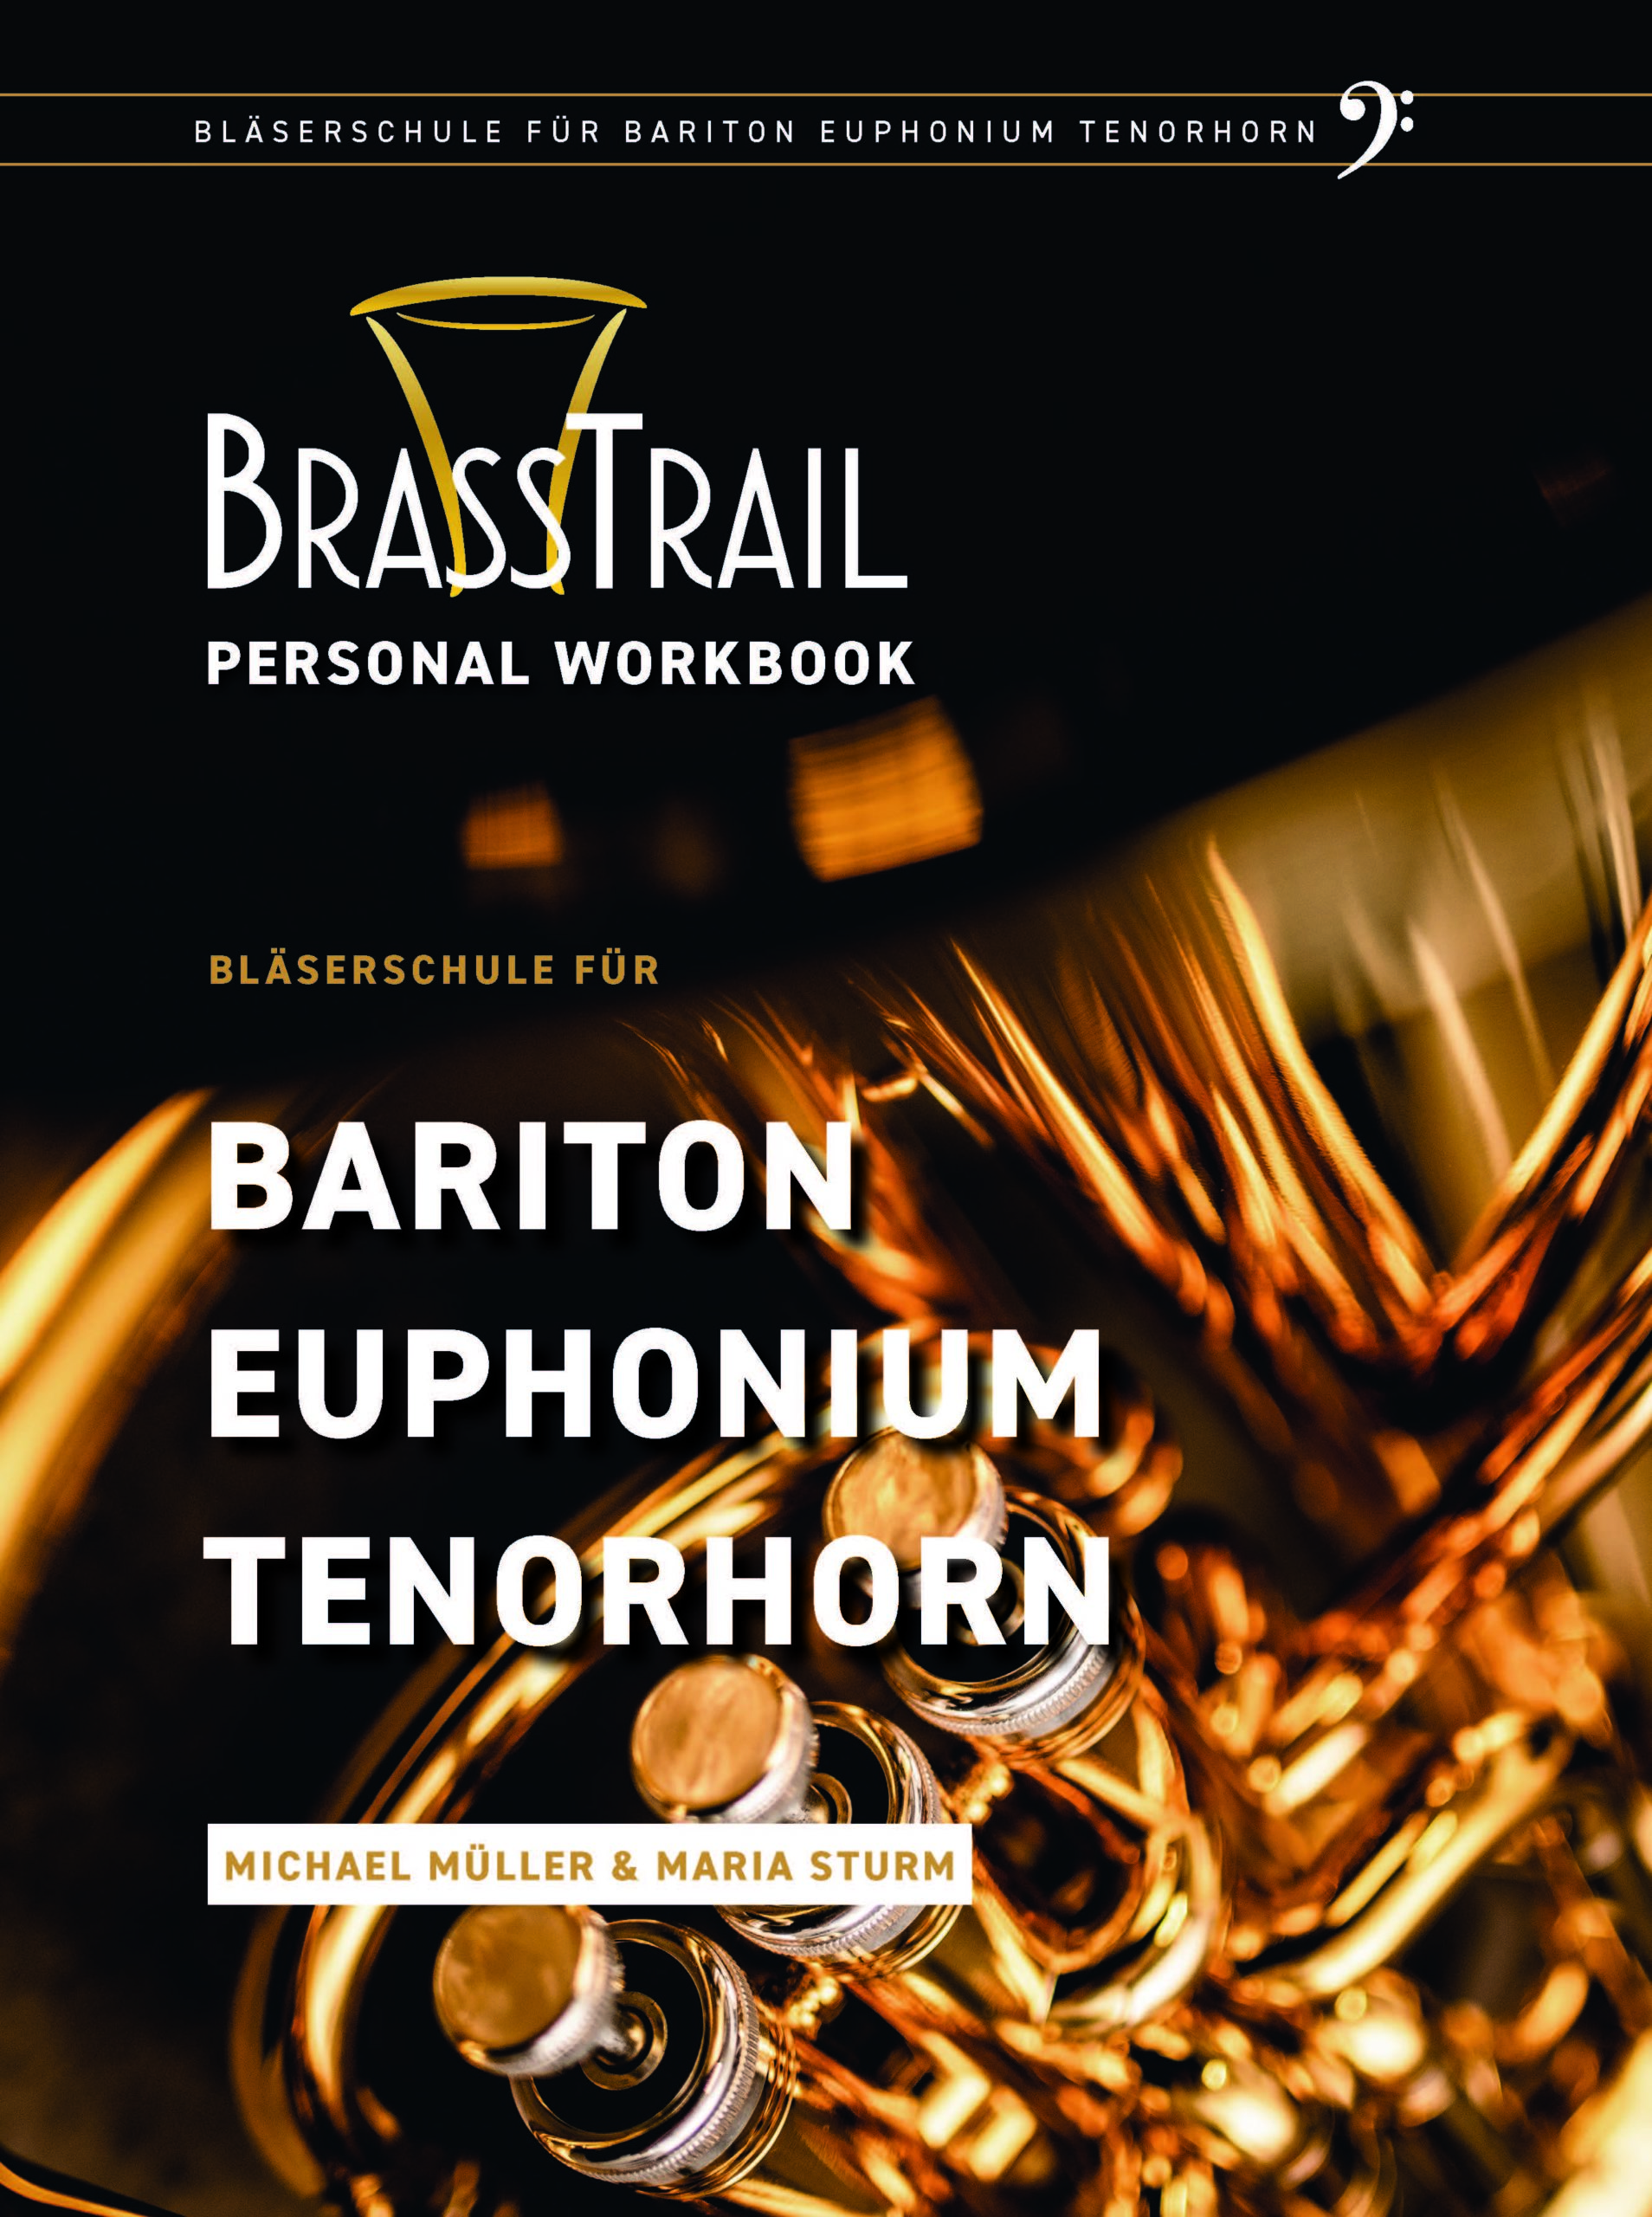 Brass Trail - Method book for Bariton/Euphonium/Tenorhorn - Bass Clef version - Michael Muller and Maria Sturm - NEW!!